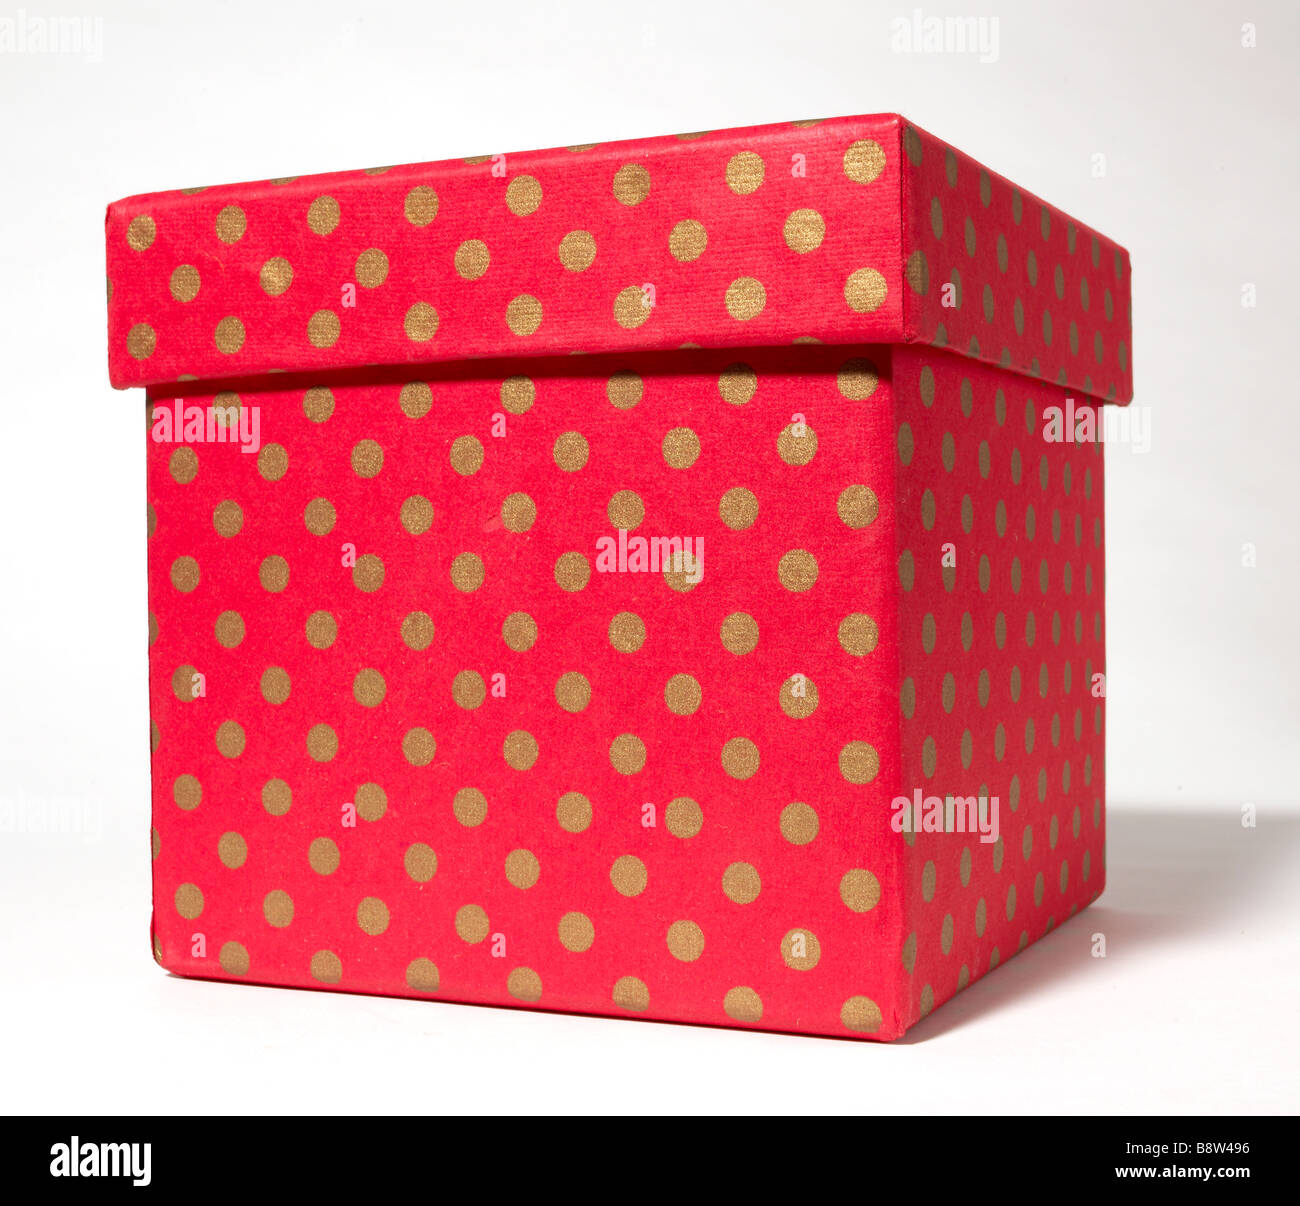 Red and Gold Polka Dot Gift Box Present - Stock Image